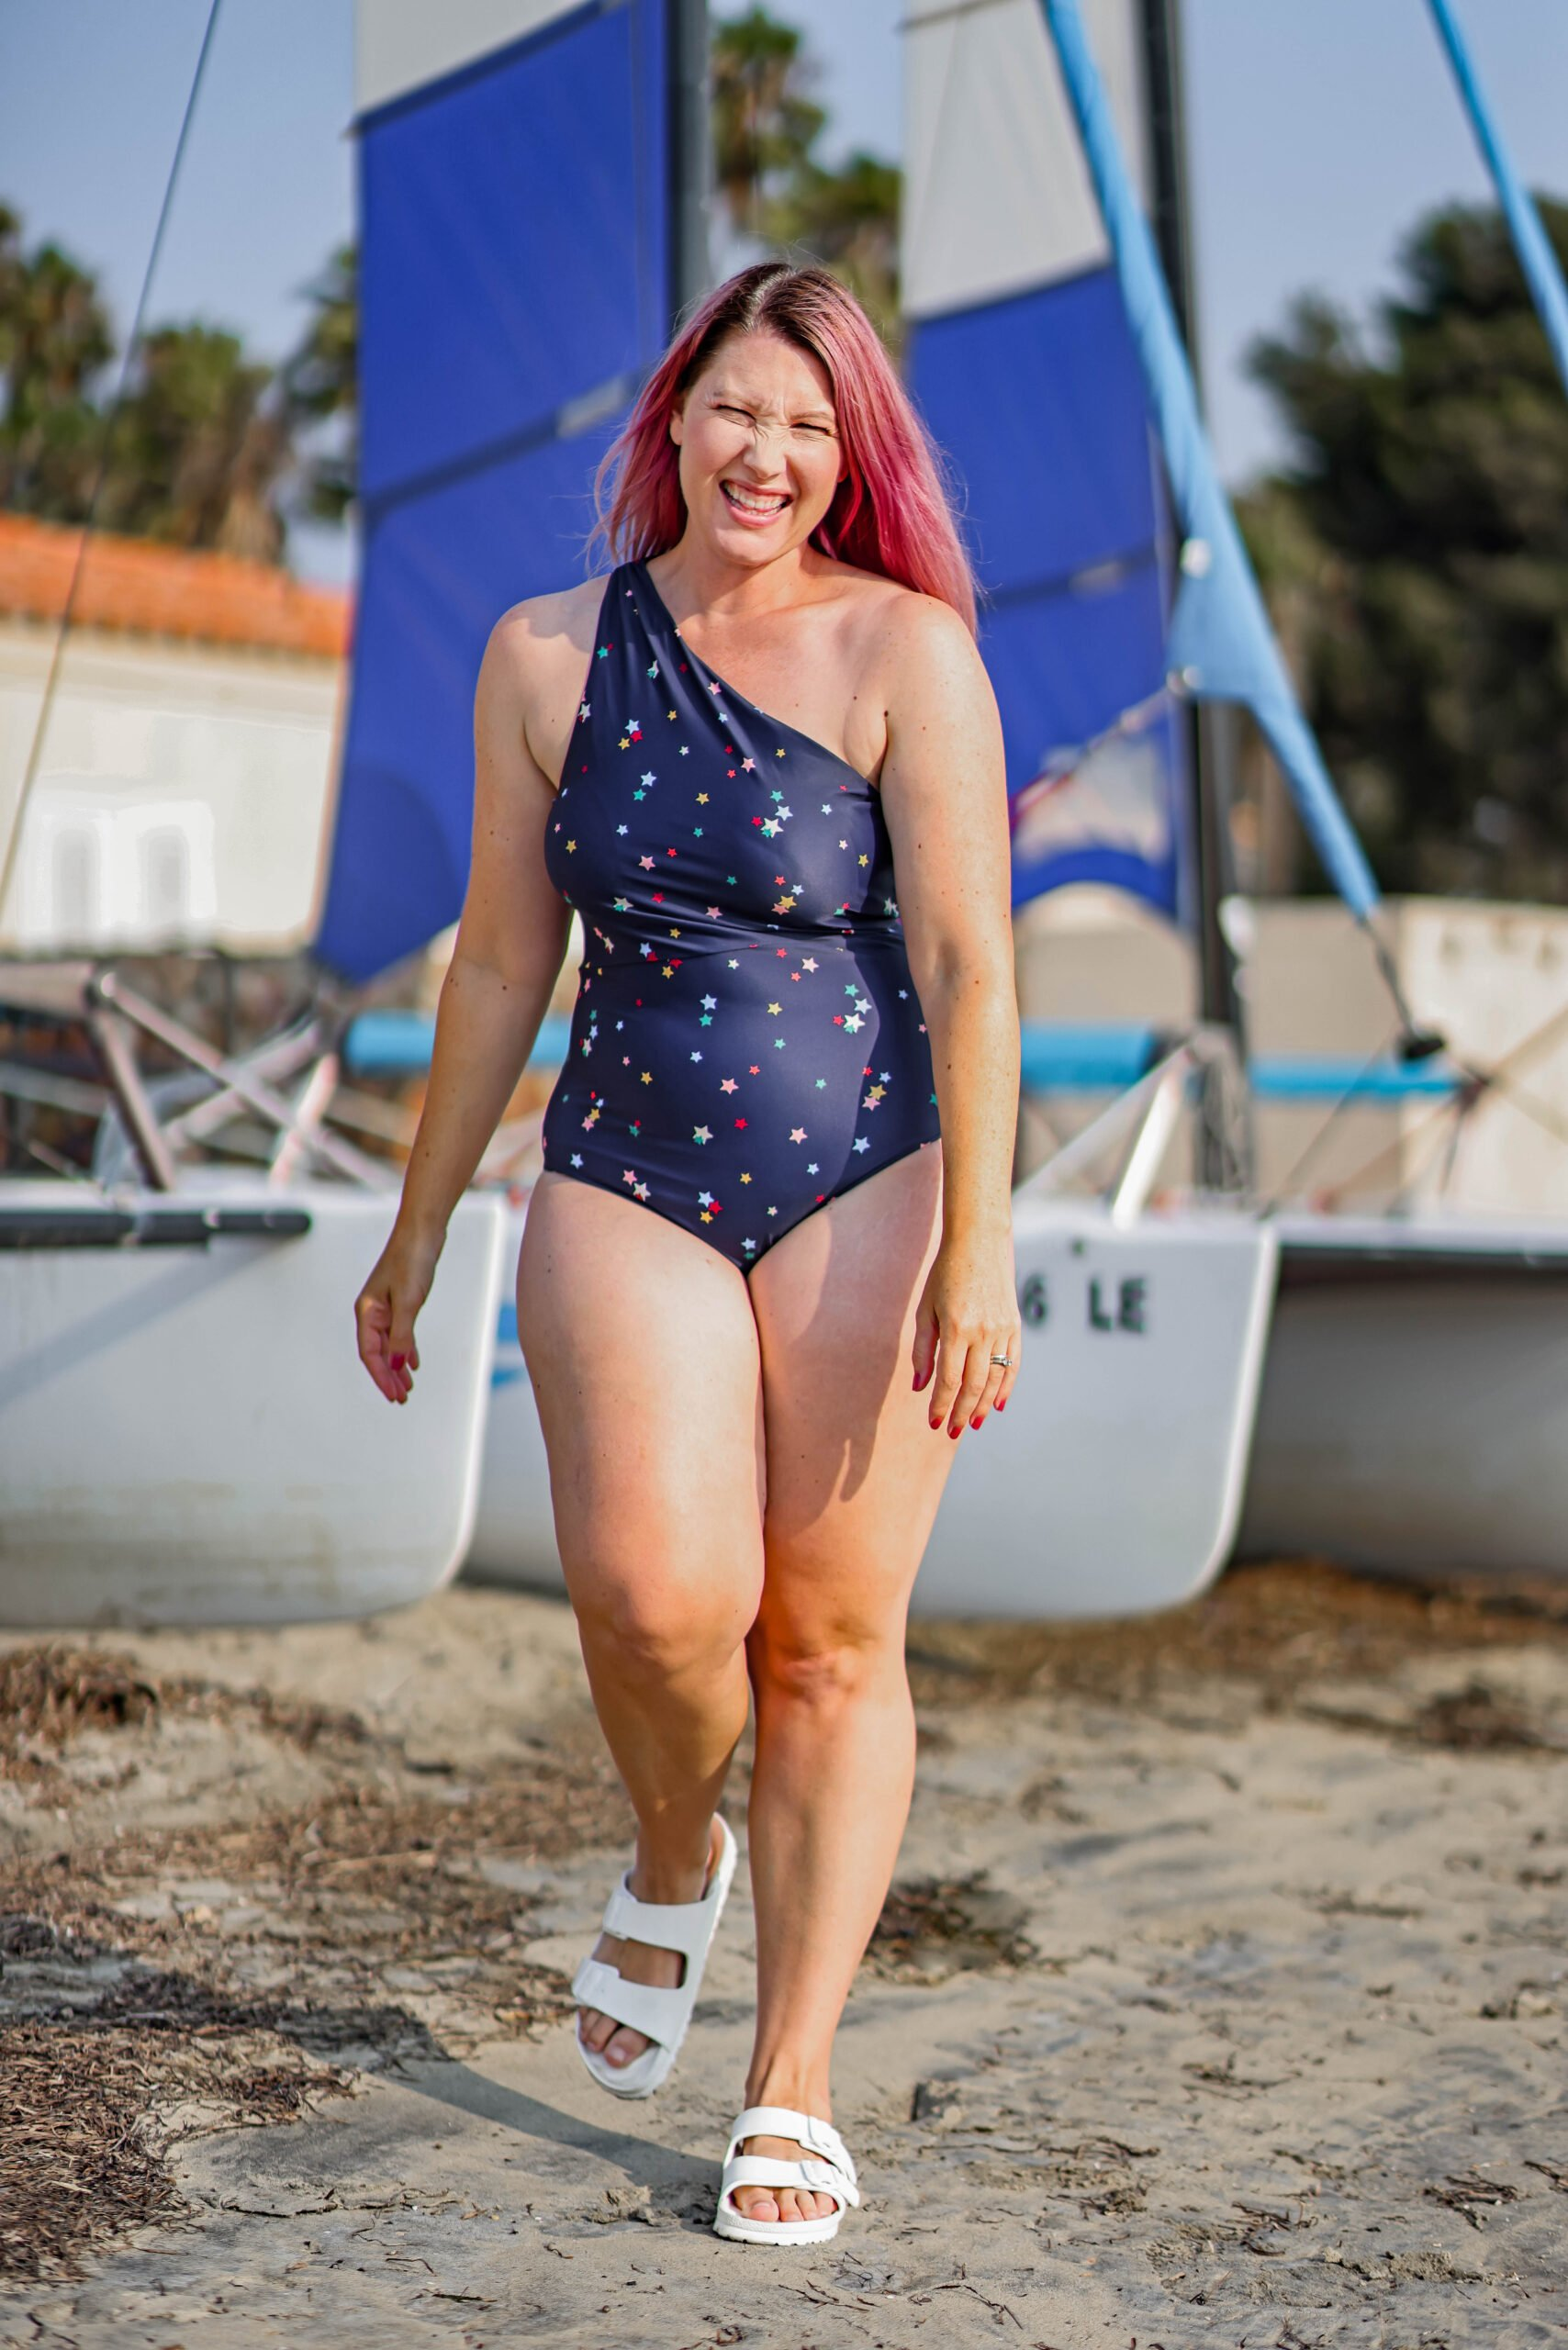 Want the scoop on Summersalt Swim? I finally did it, I got my hands on this insta-famous swimsuit brand and tried a few of their one pieces, their activewear, their pajamas, their dresses and their cover ups!